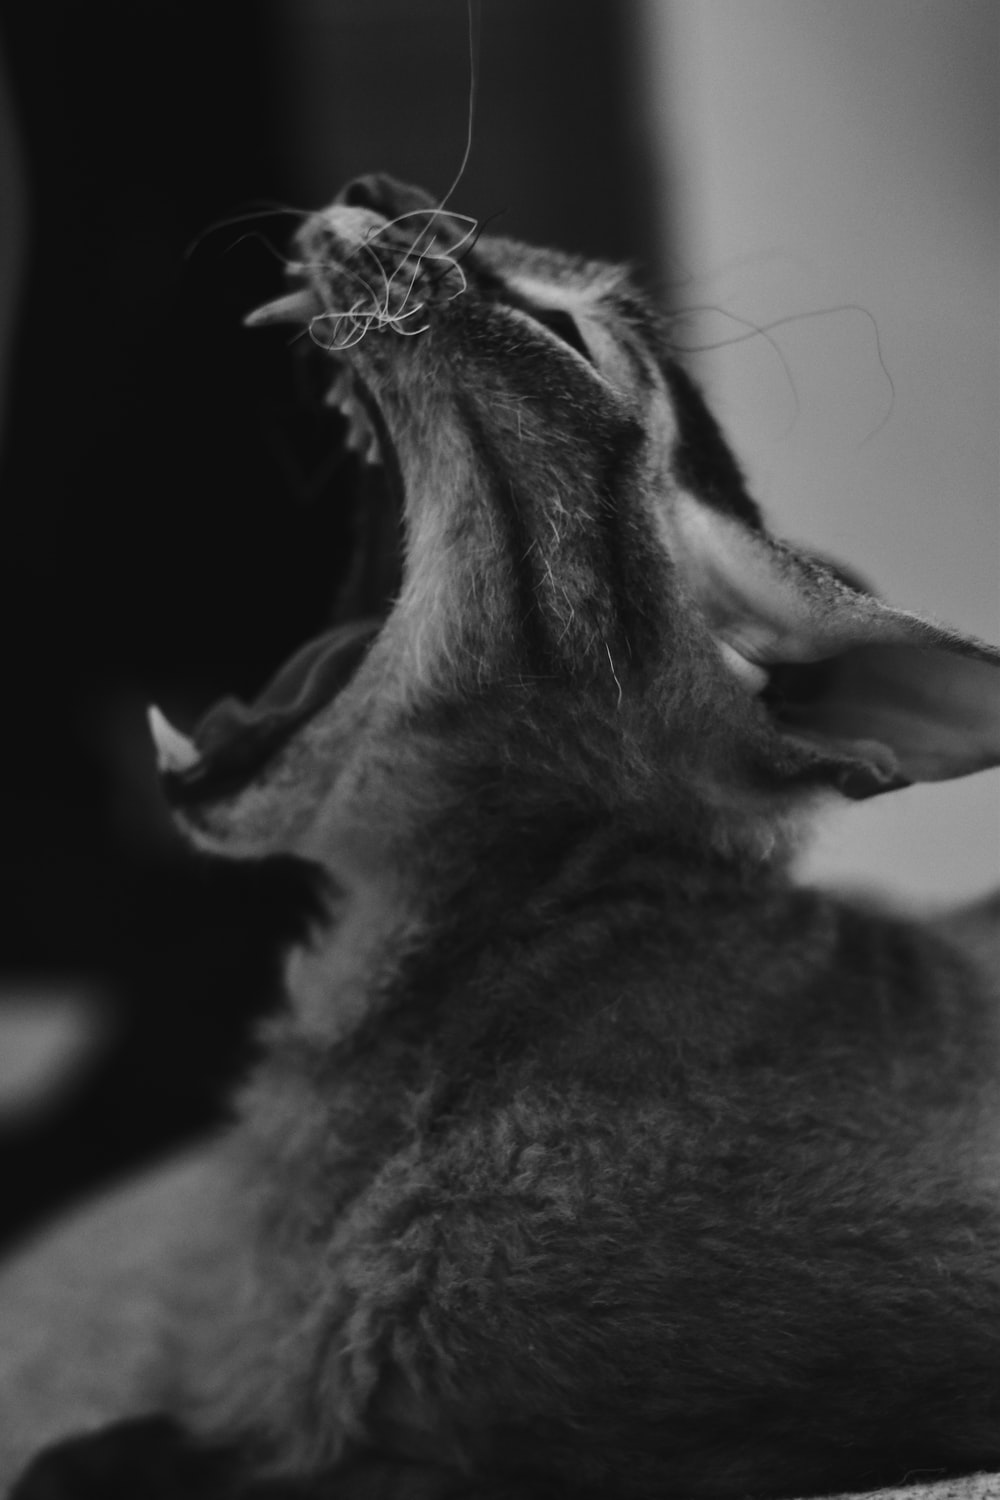 grayscale photo of a cat with a tree branch